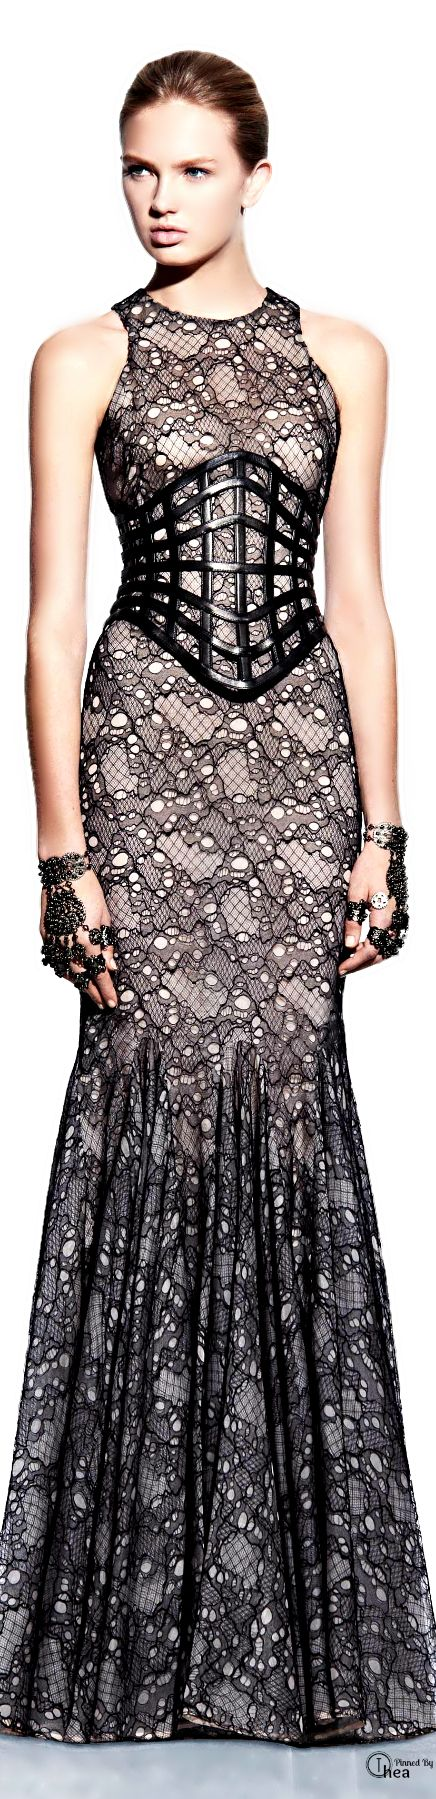 Alexander McQueen ● Evening Gown | The House of Beccaria